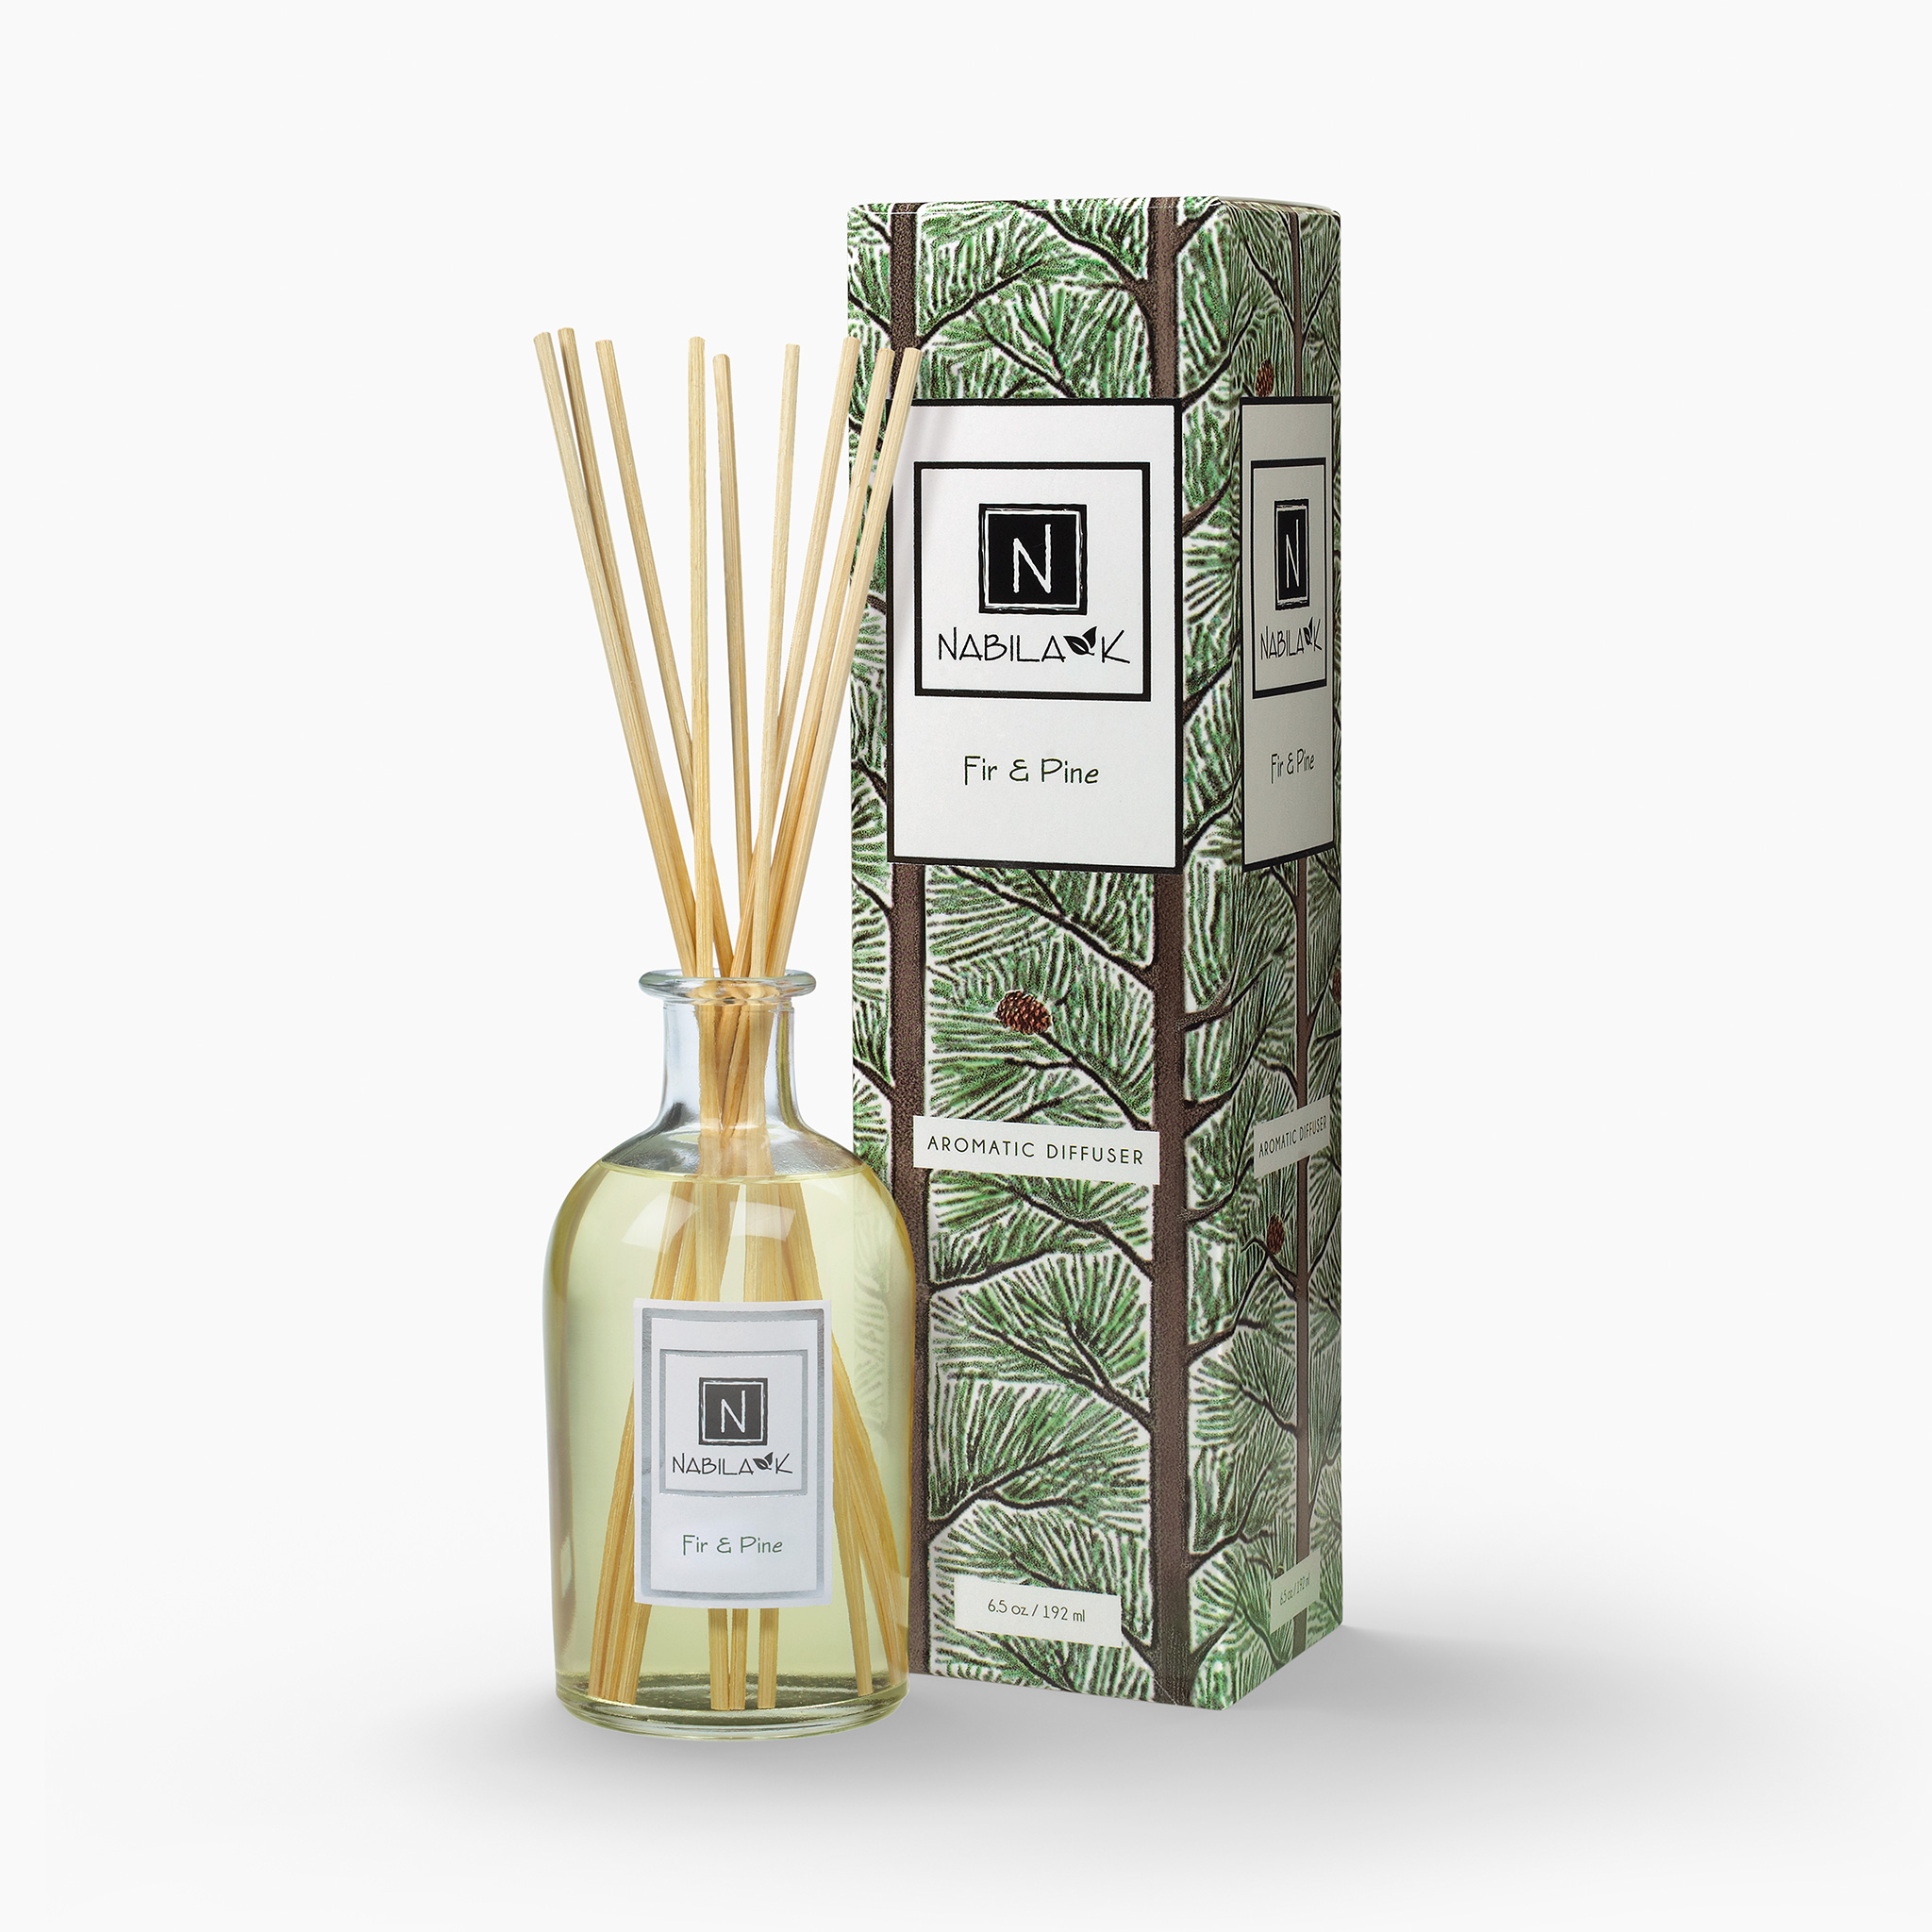 Nabila K's Fir and Pine with reeds inside the bottle with it's packaging next to it